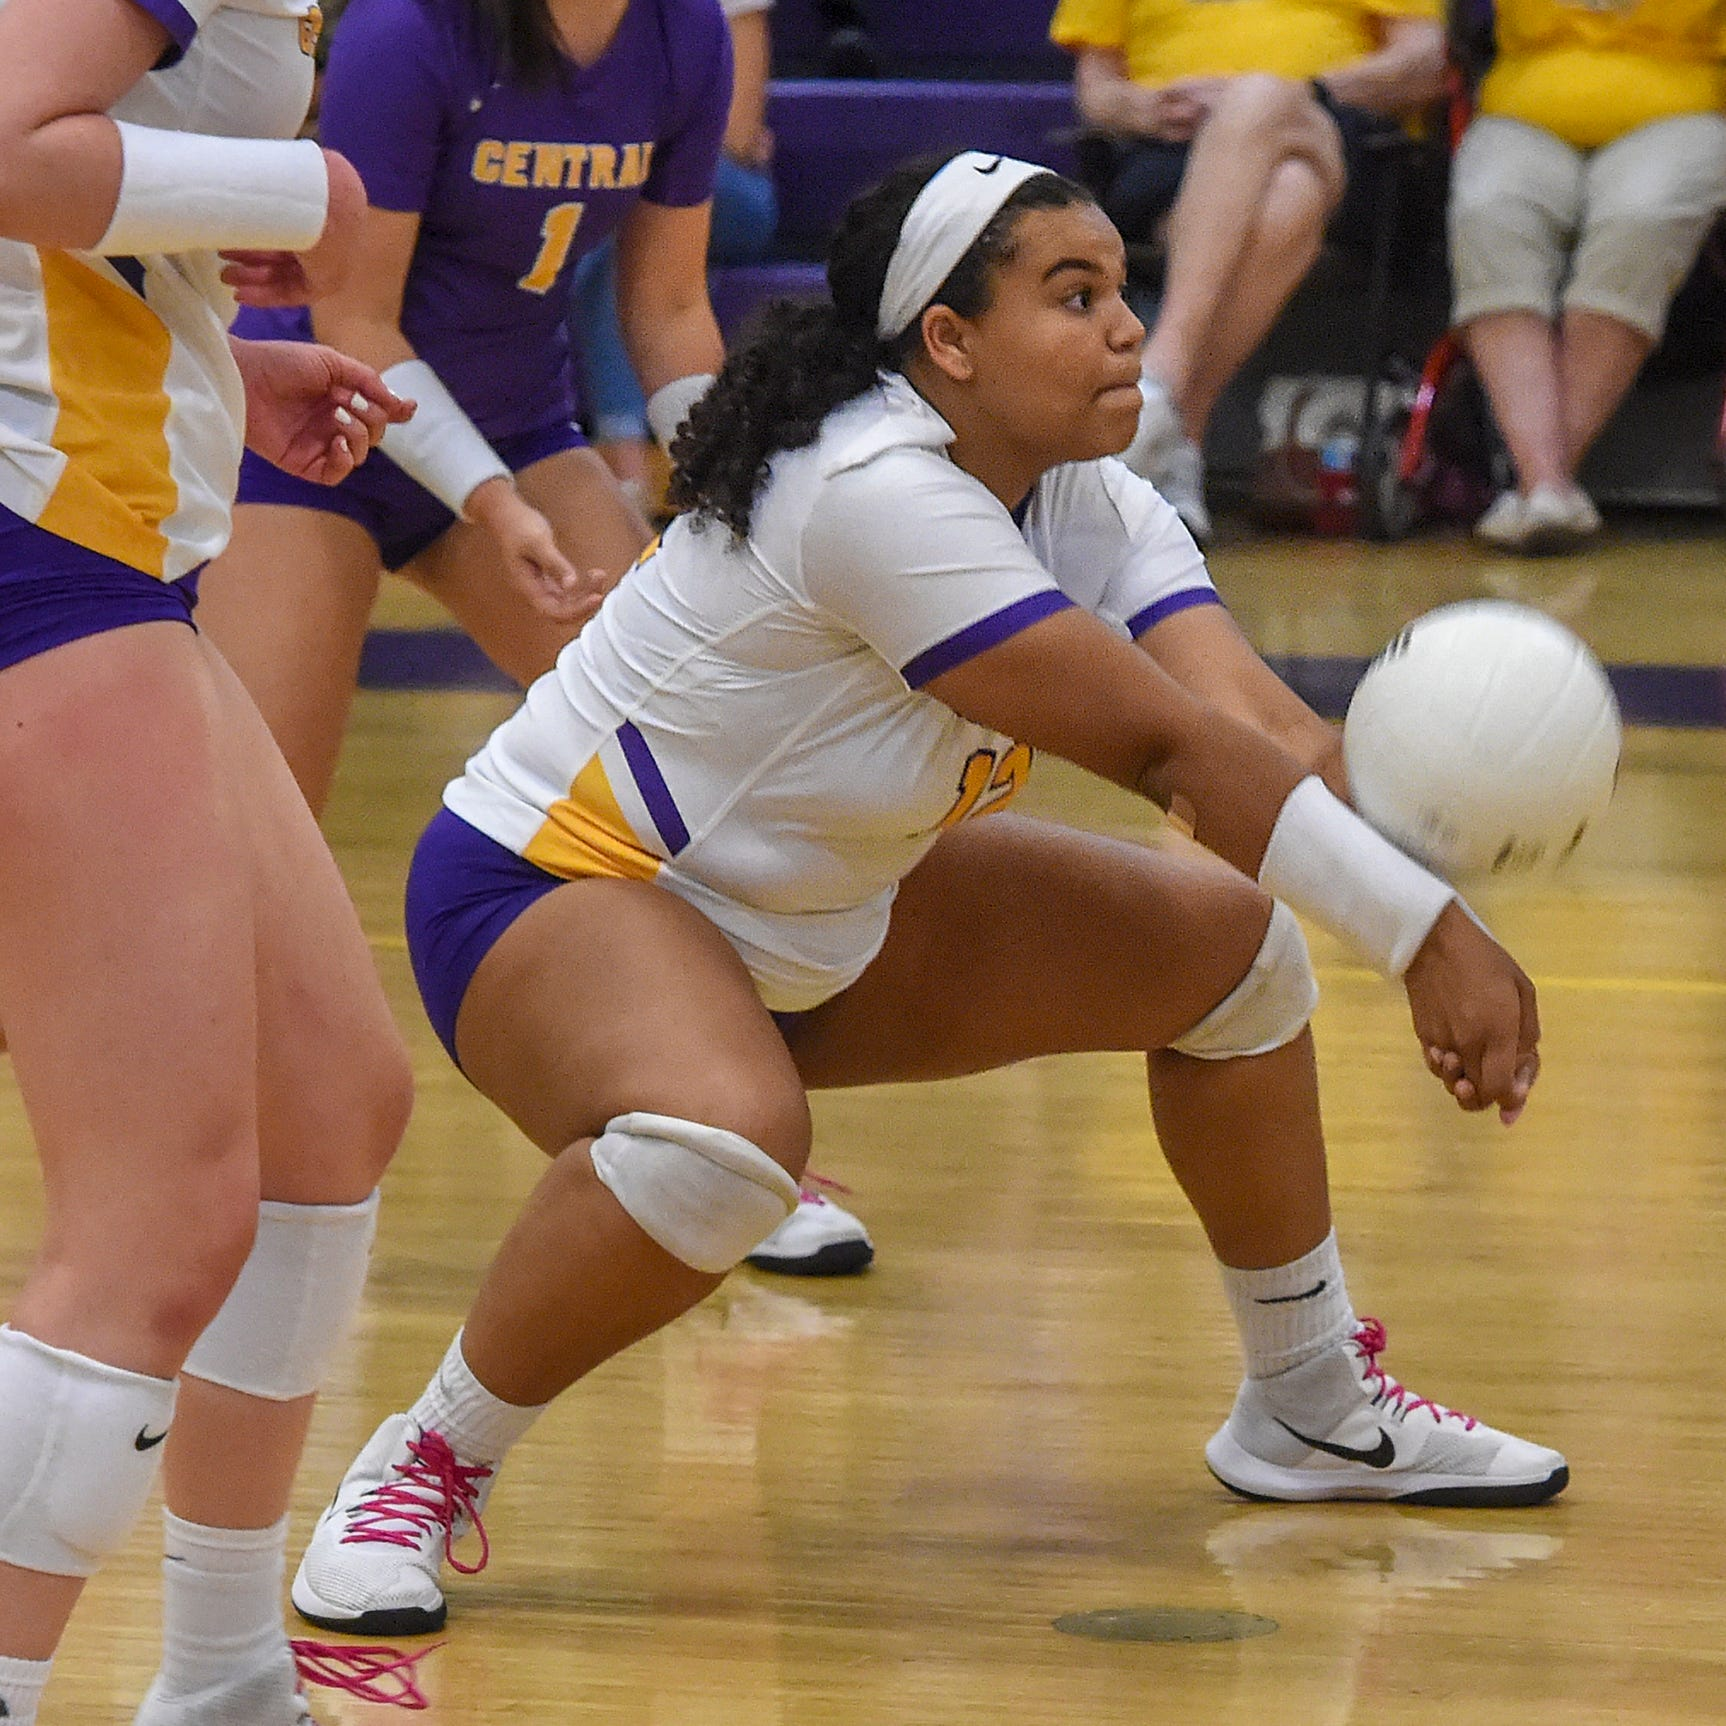 Fort Pierce Central volleyball team ready to end district title drought